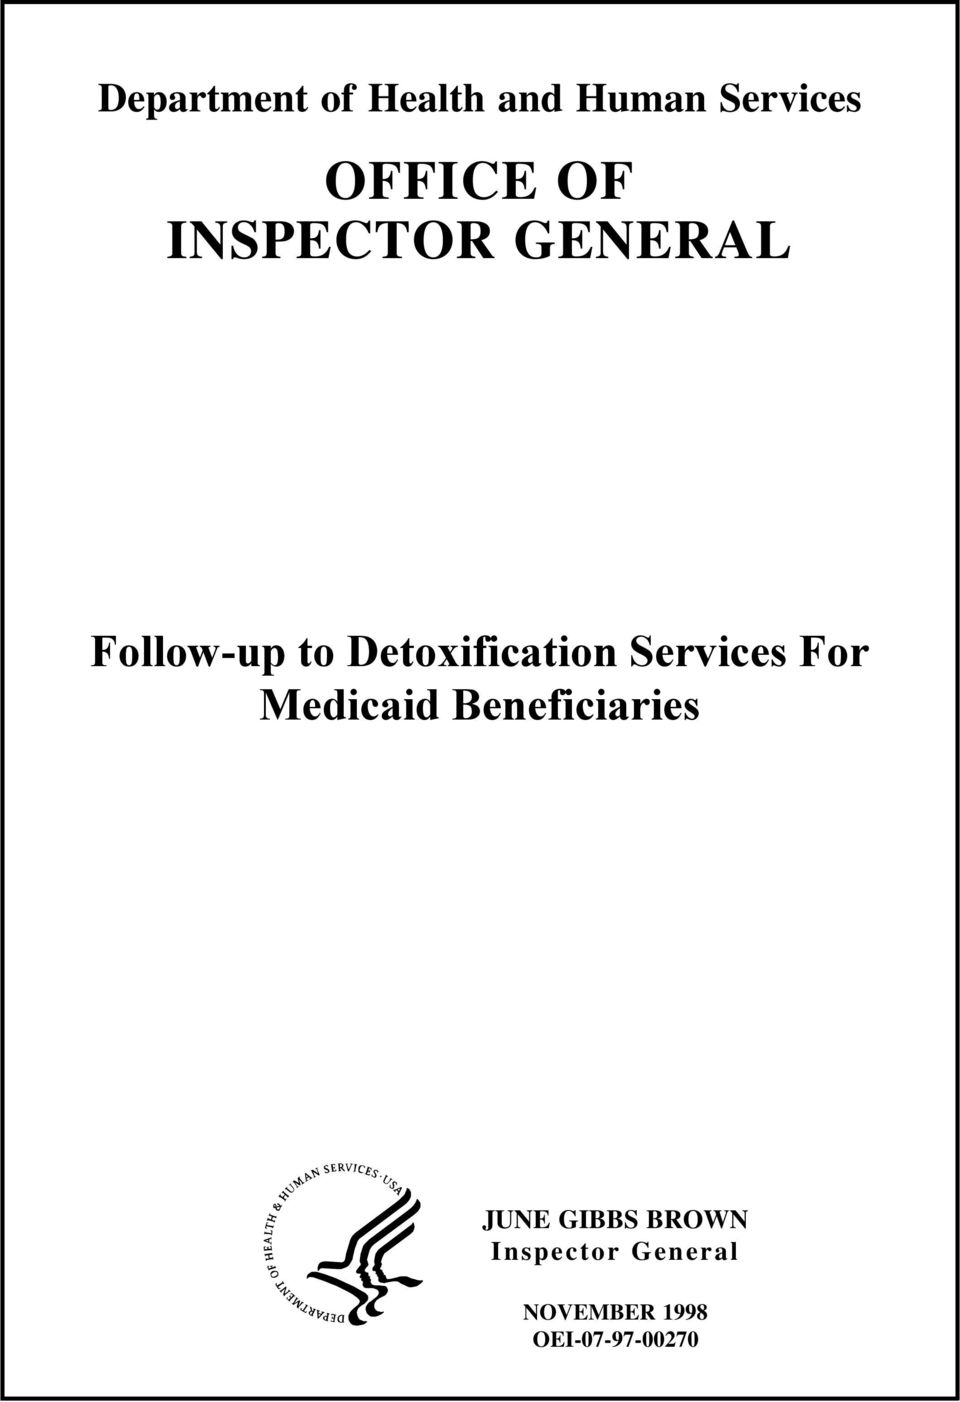 Services For Medicaid Beneficiaries JUNE GIBBS